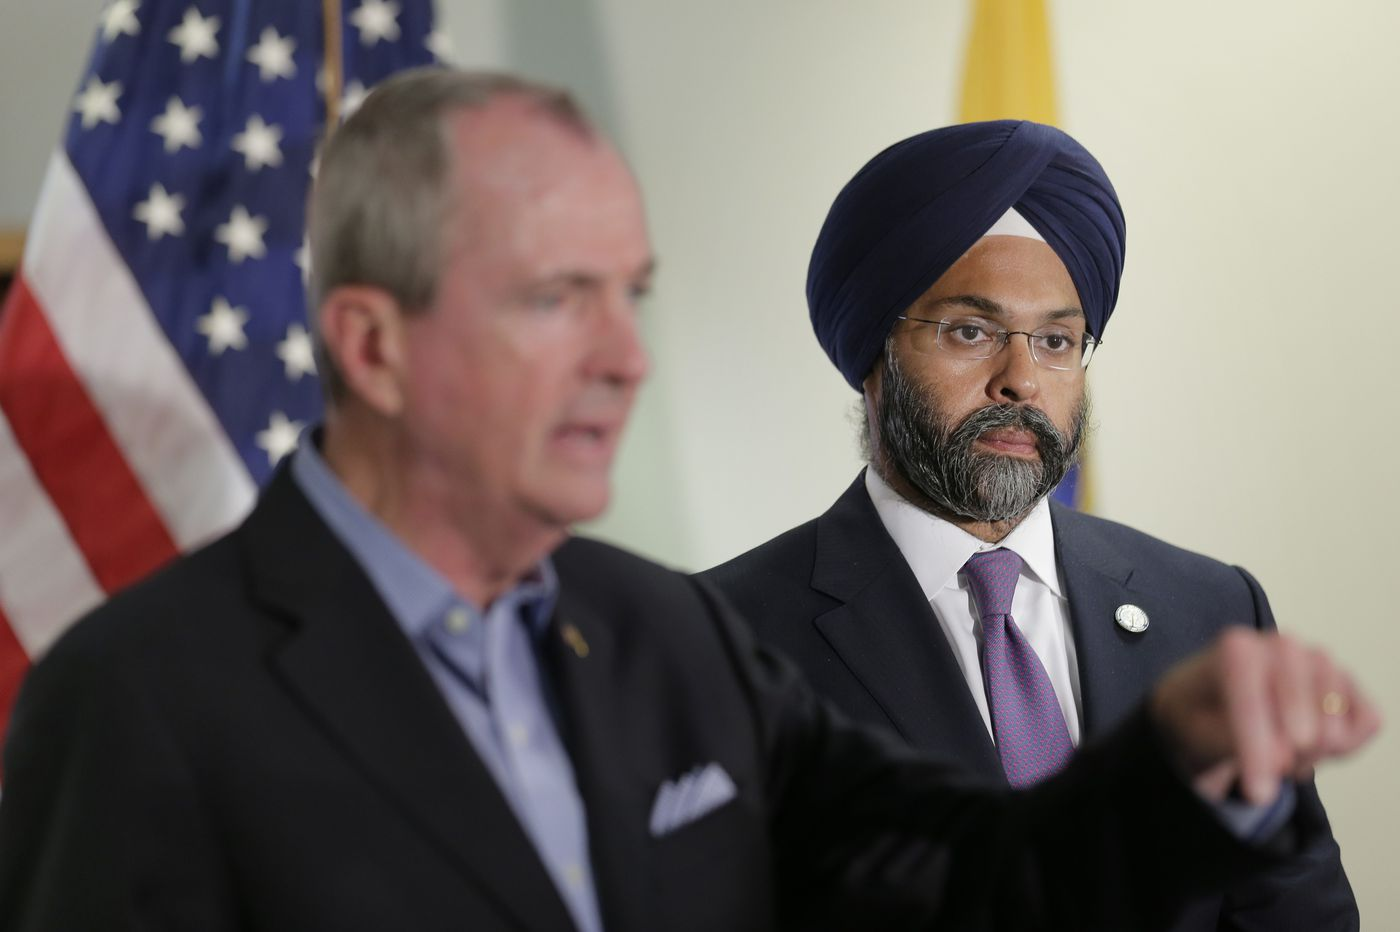 N.J., with nation's highest property taxes, keeps up fight over federal tax law changes